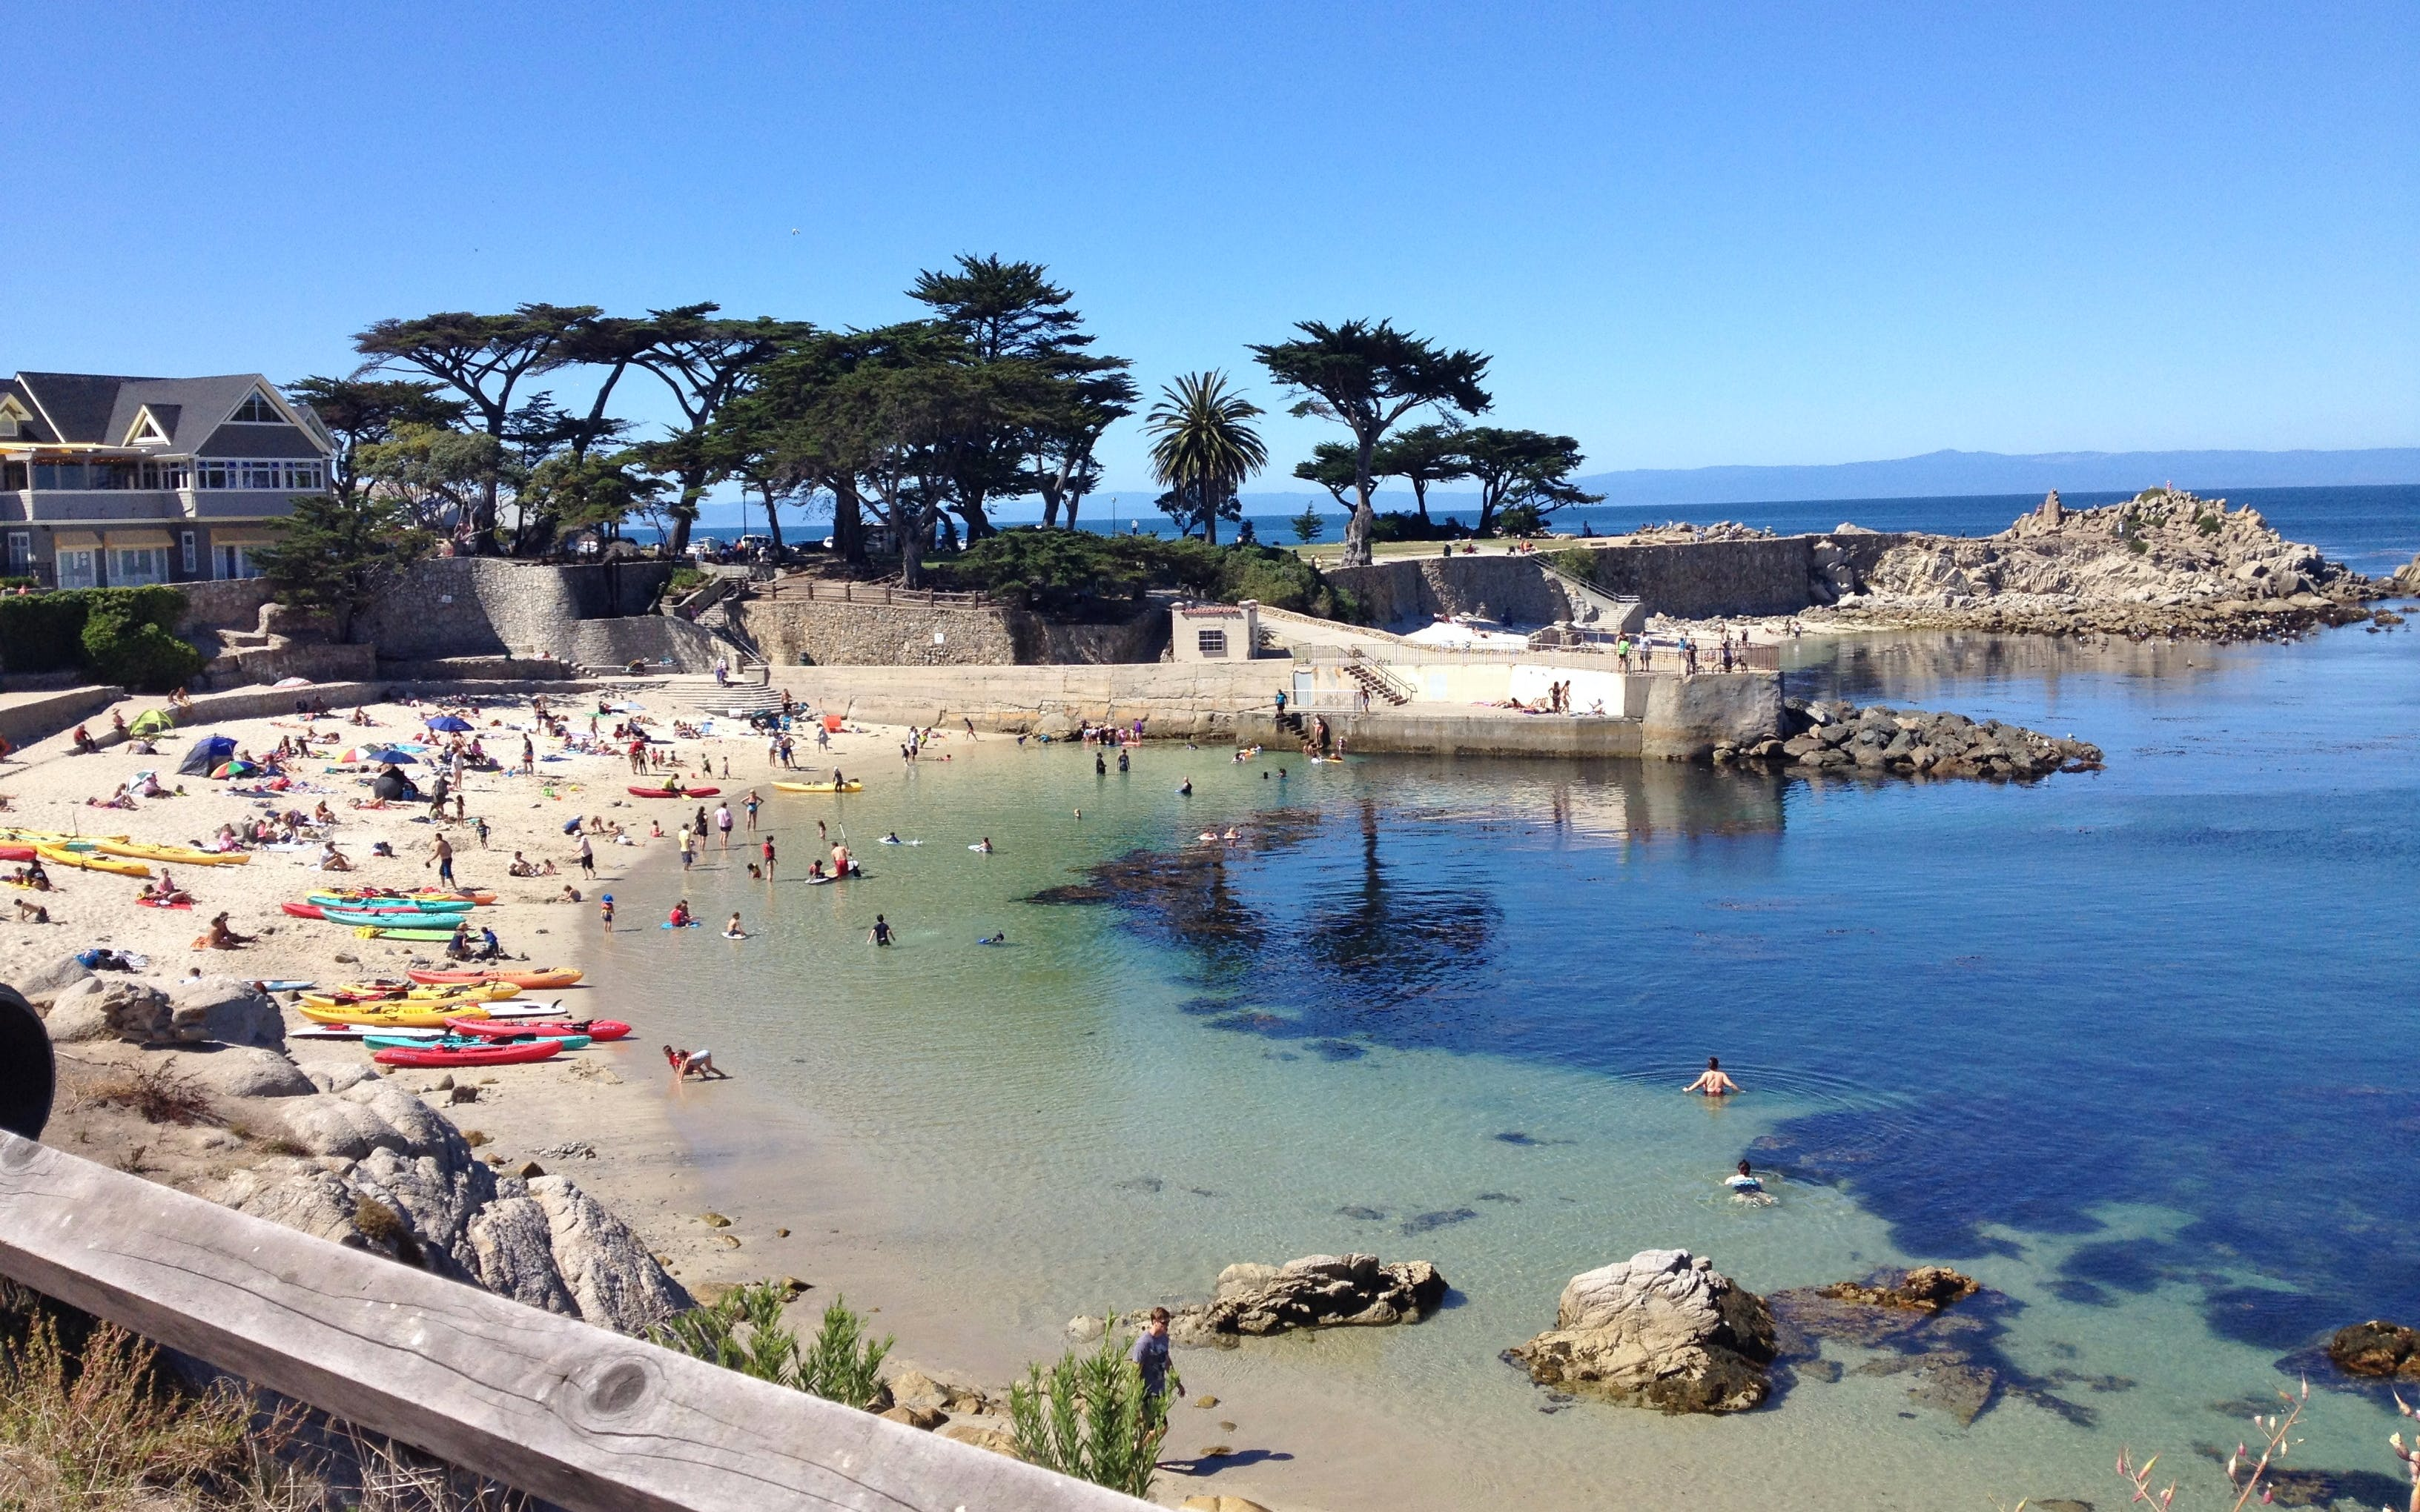 Monterey, Carmel & The 17-Mile Drive